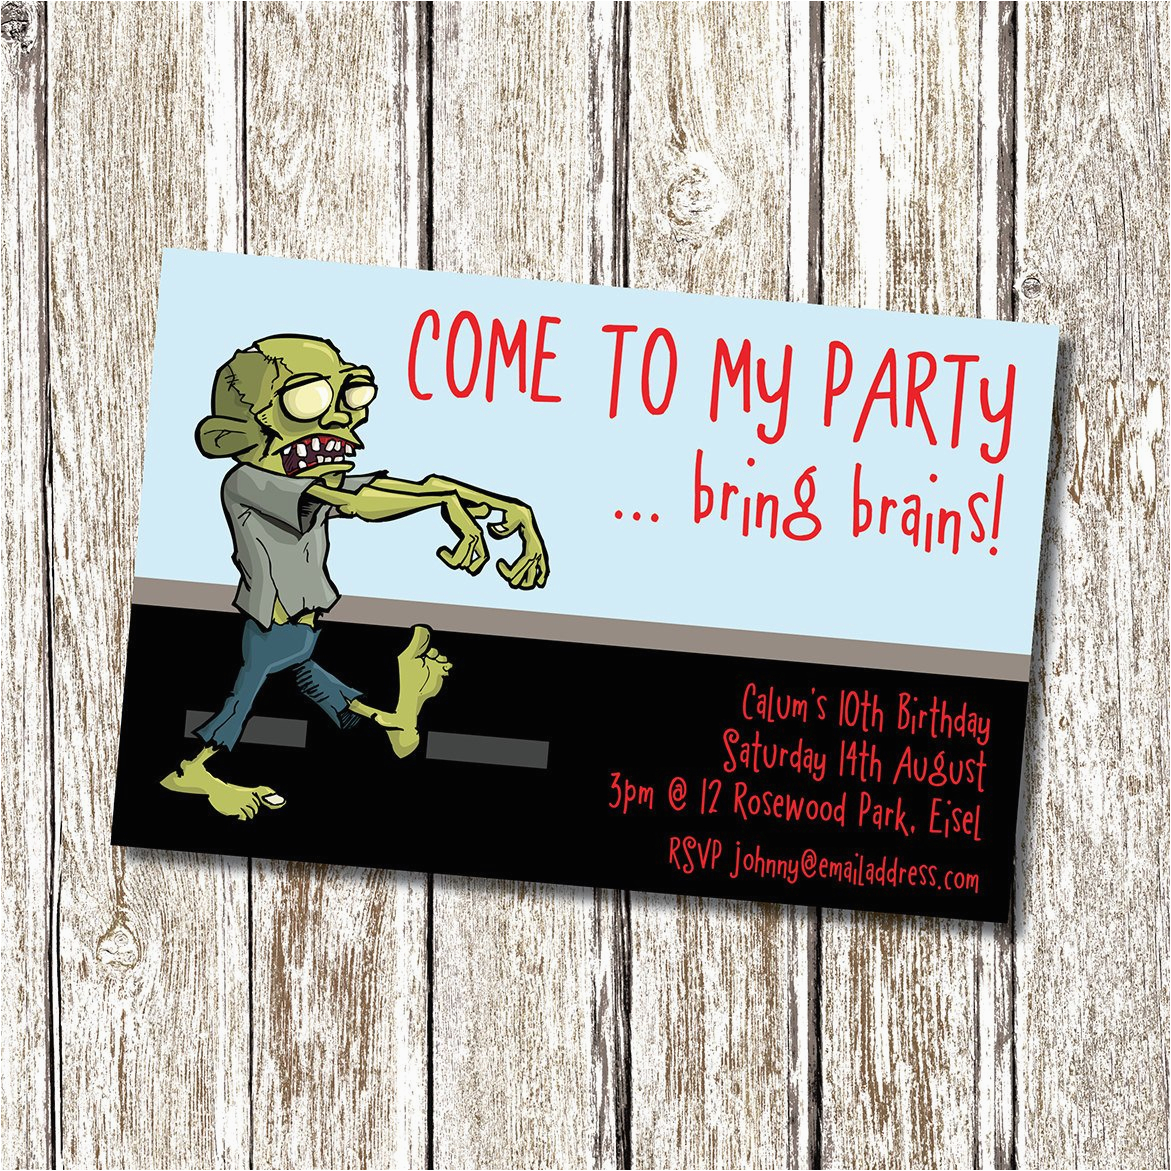 Zombie Birthday Party Invitations Zombie Birthday Party Invitation Printable and Personalised